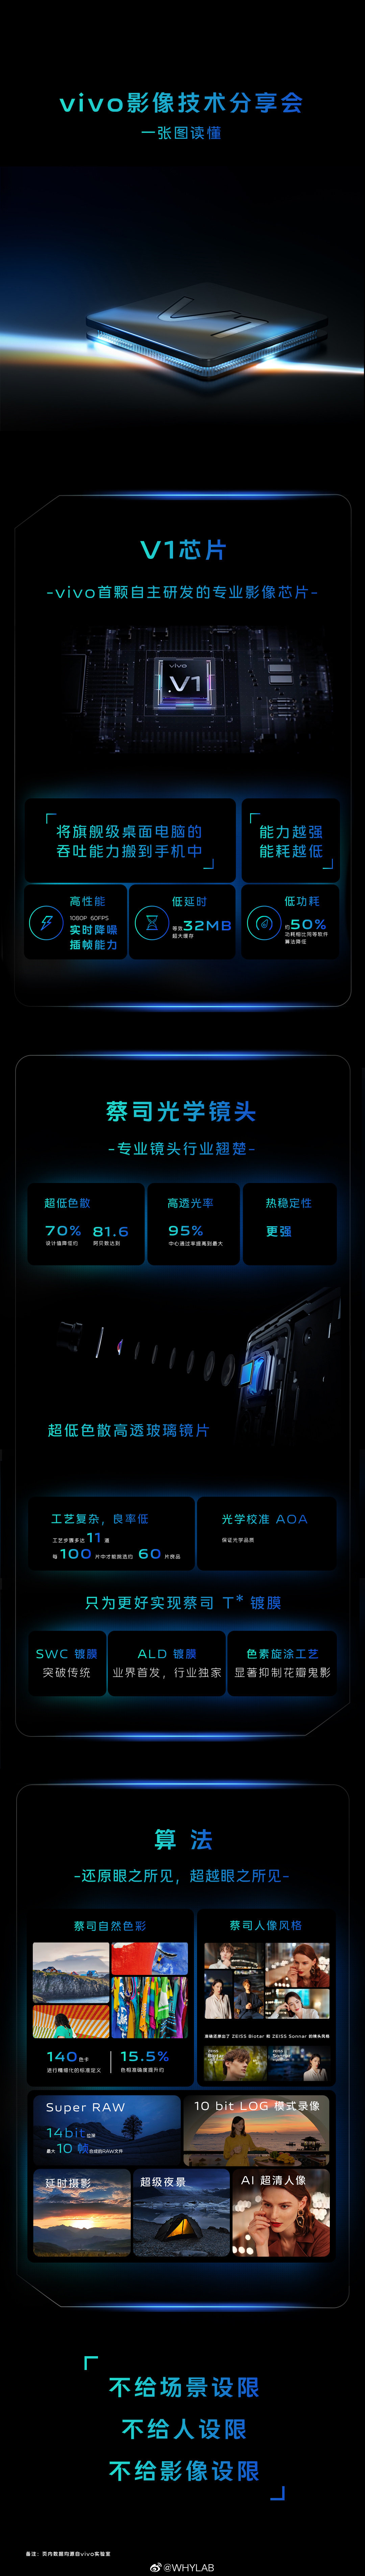 Vivo Customized V1 Chip And Other Technologies